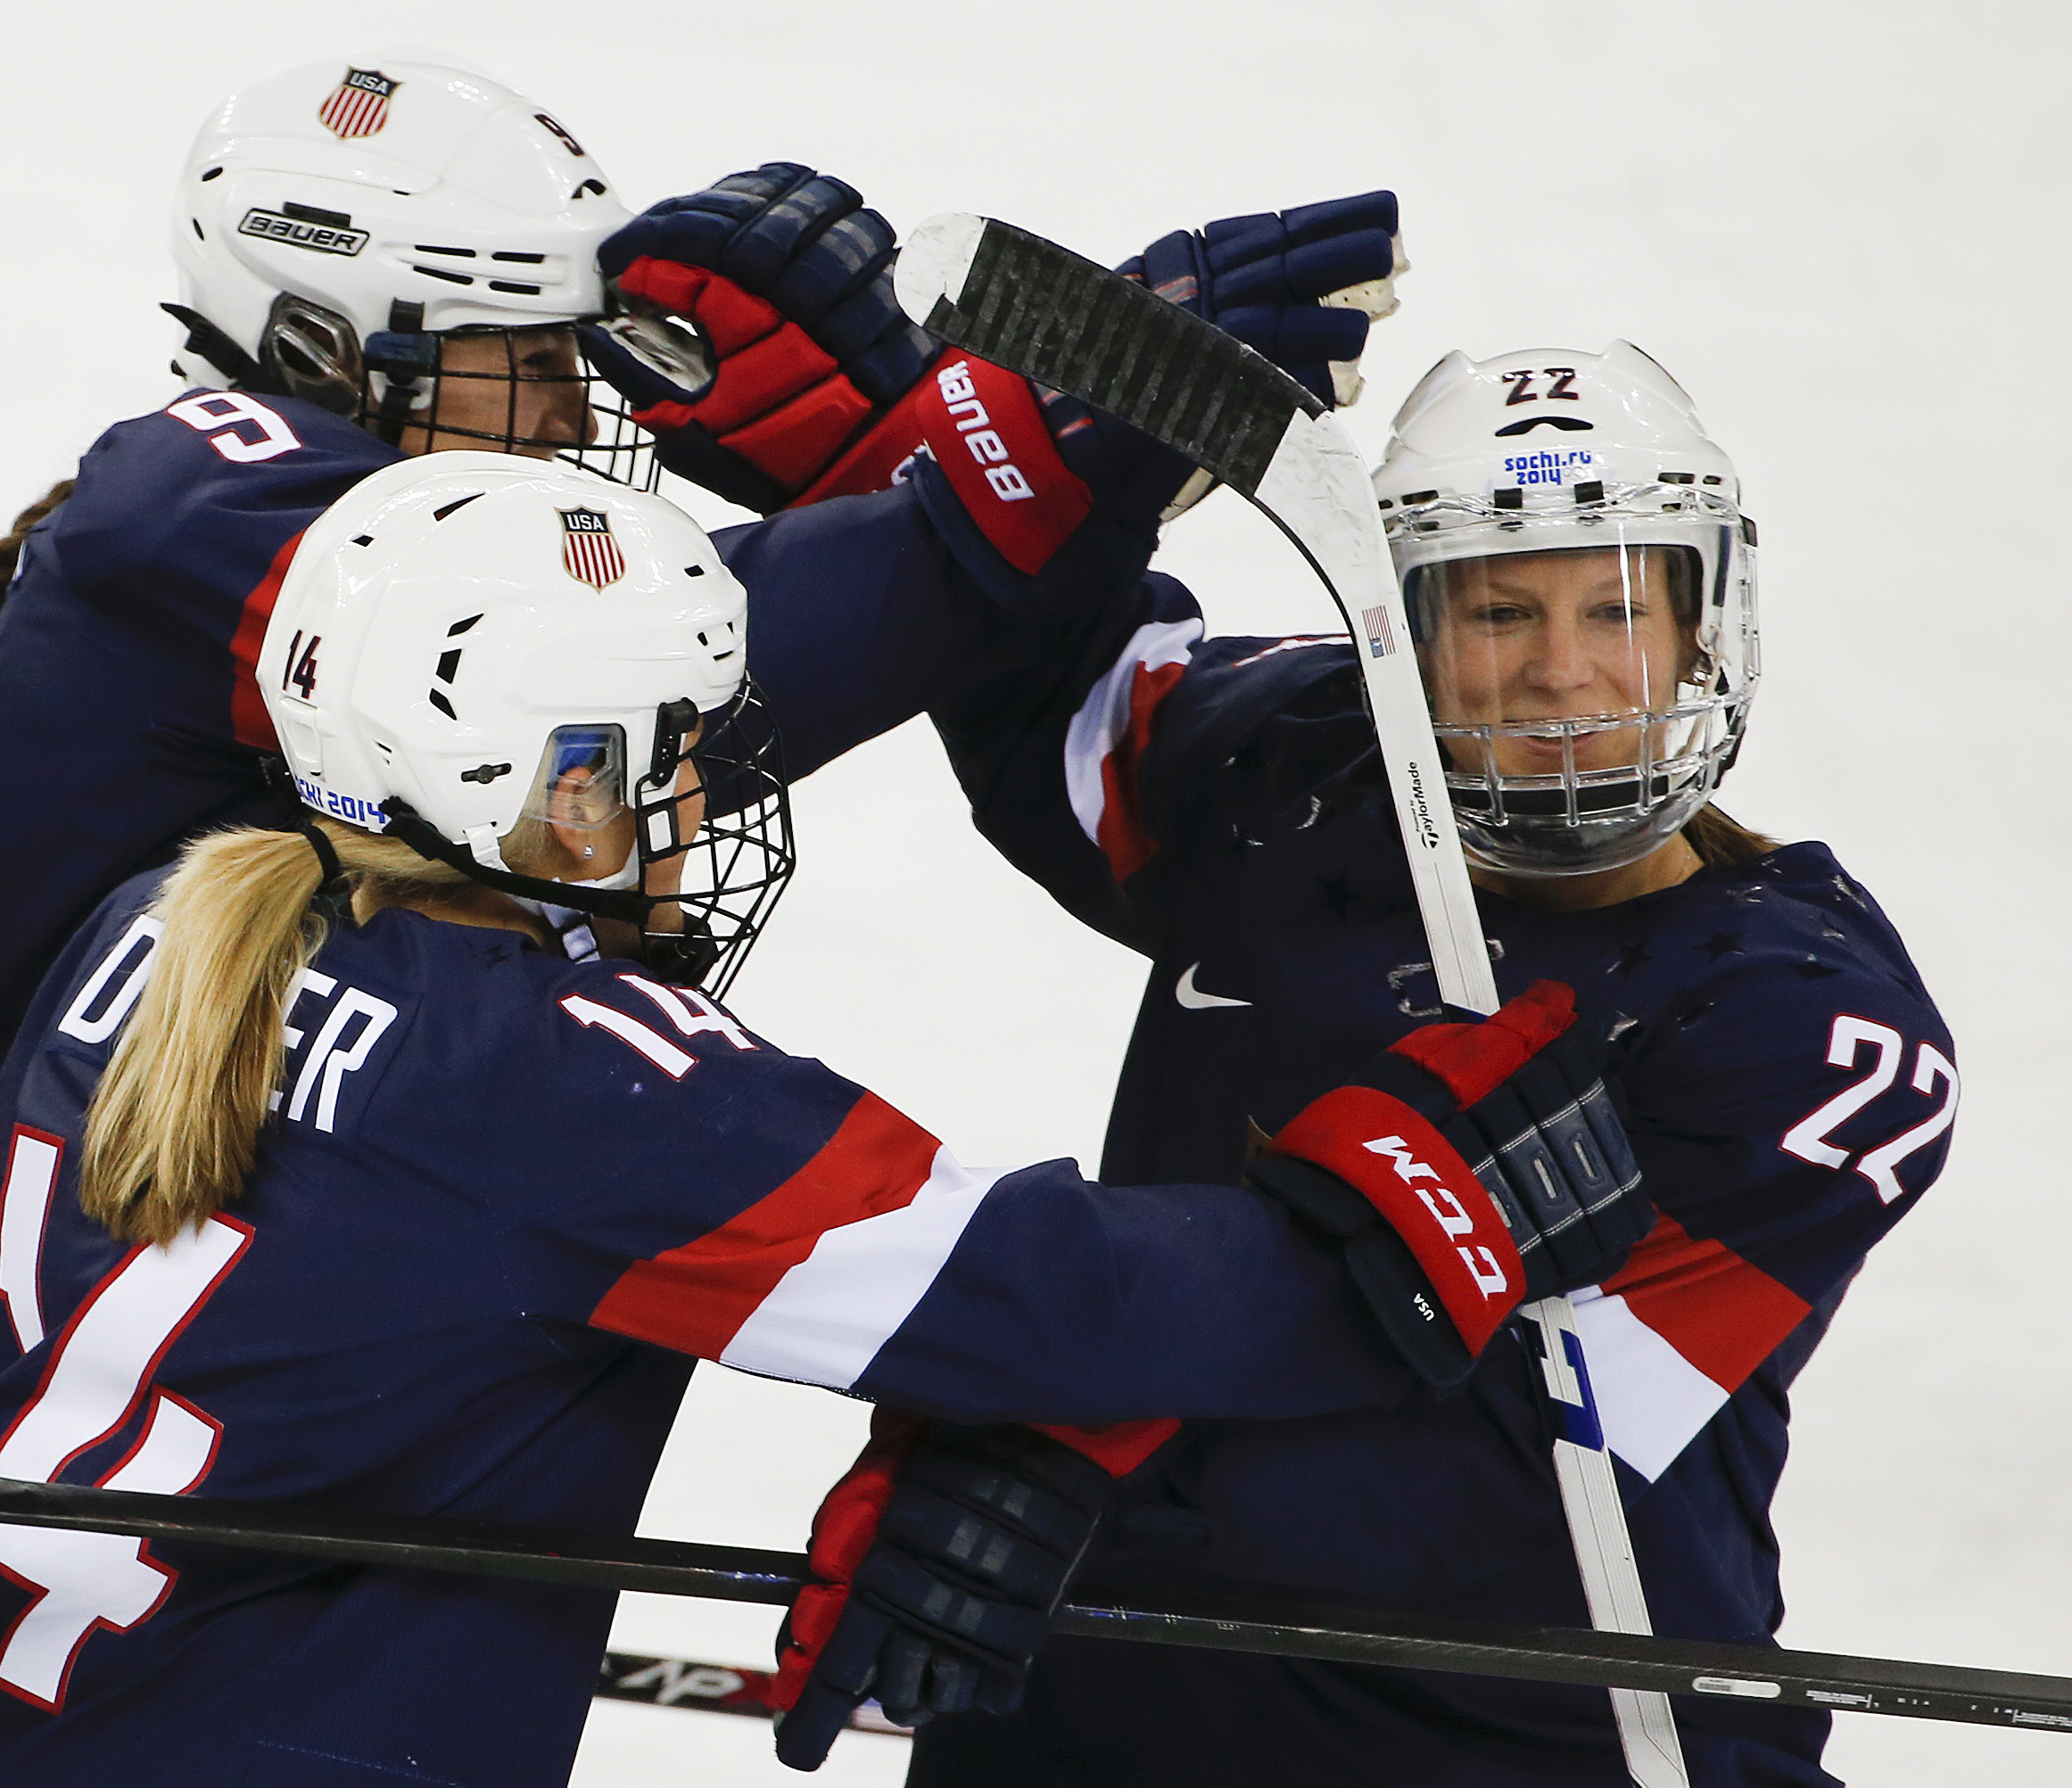 FILE - In this Feb. 17, 2014, file photo, Kacey Bellamy of the United States, right, is congratulated by teammates after scoring a goal against Sweden during the first period of the 2014 Winter Olympics women's semifinal ice hockey game  in Sochi, Russia.